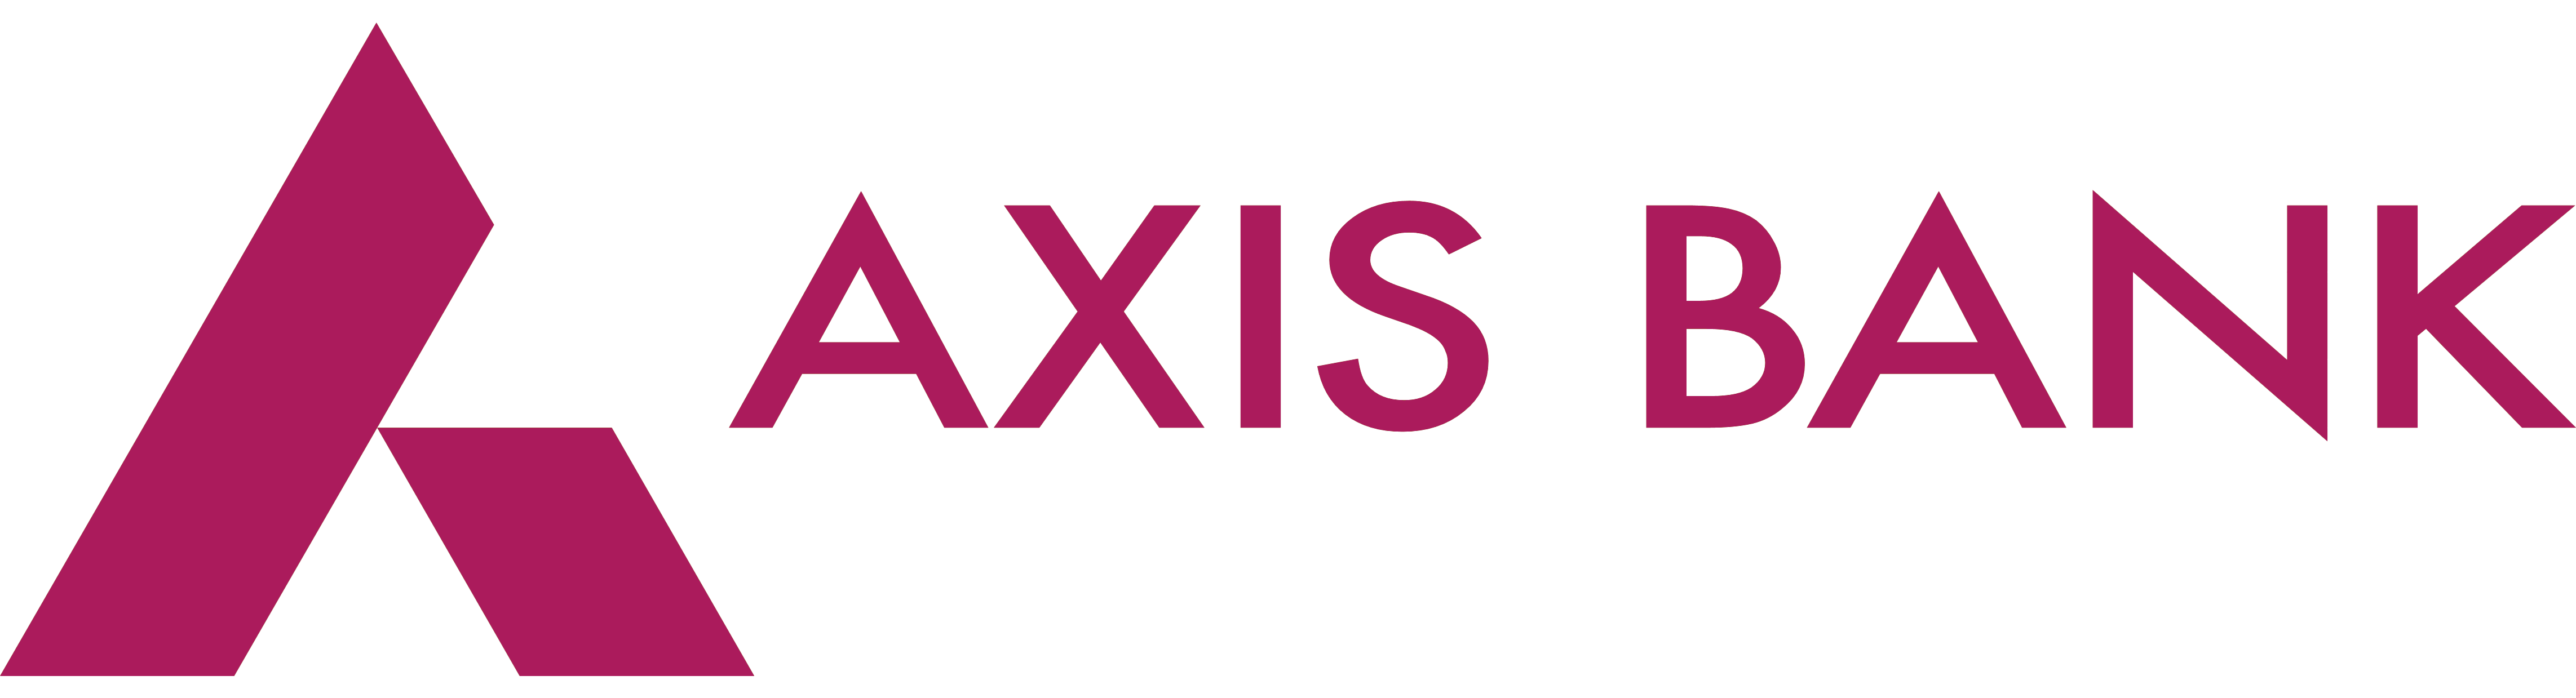 Axis_Bank_logo_logotype - Copy